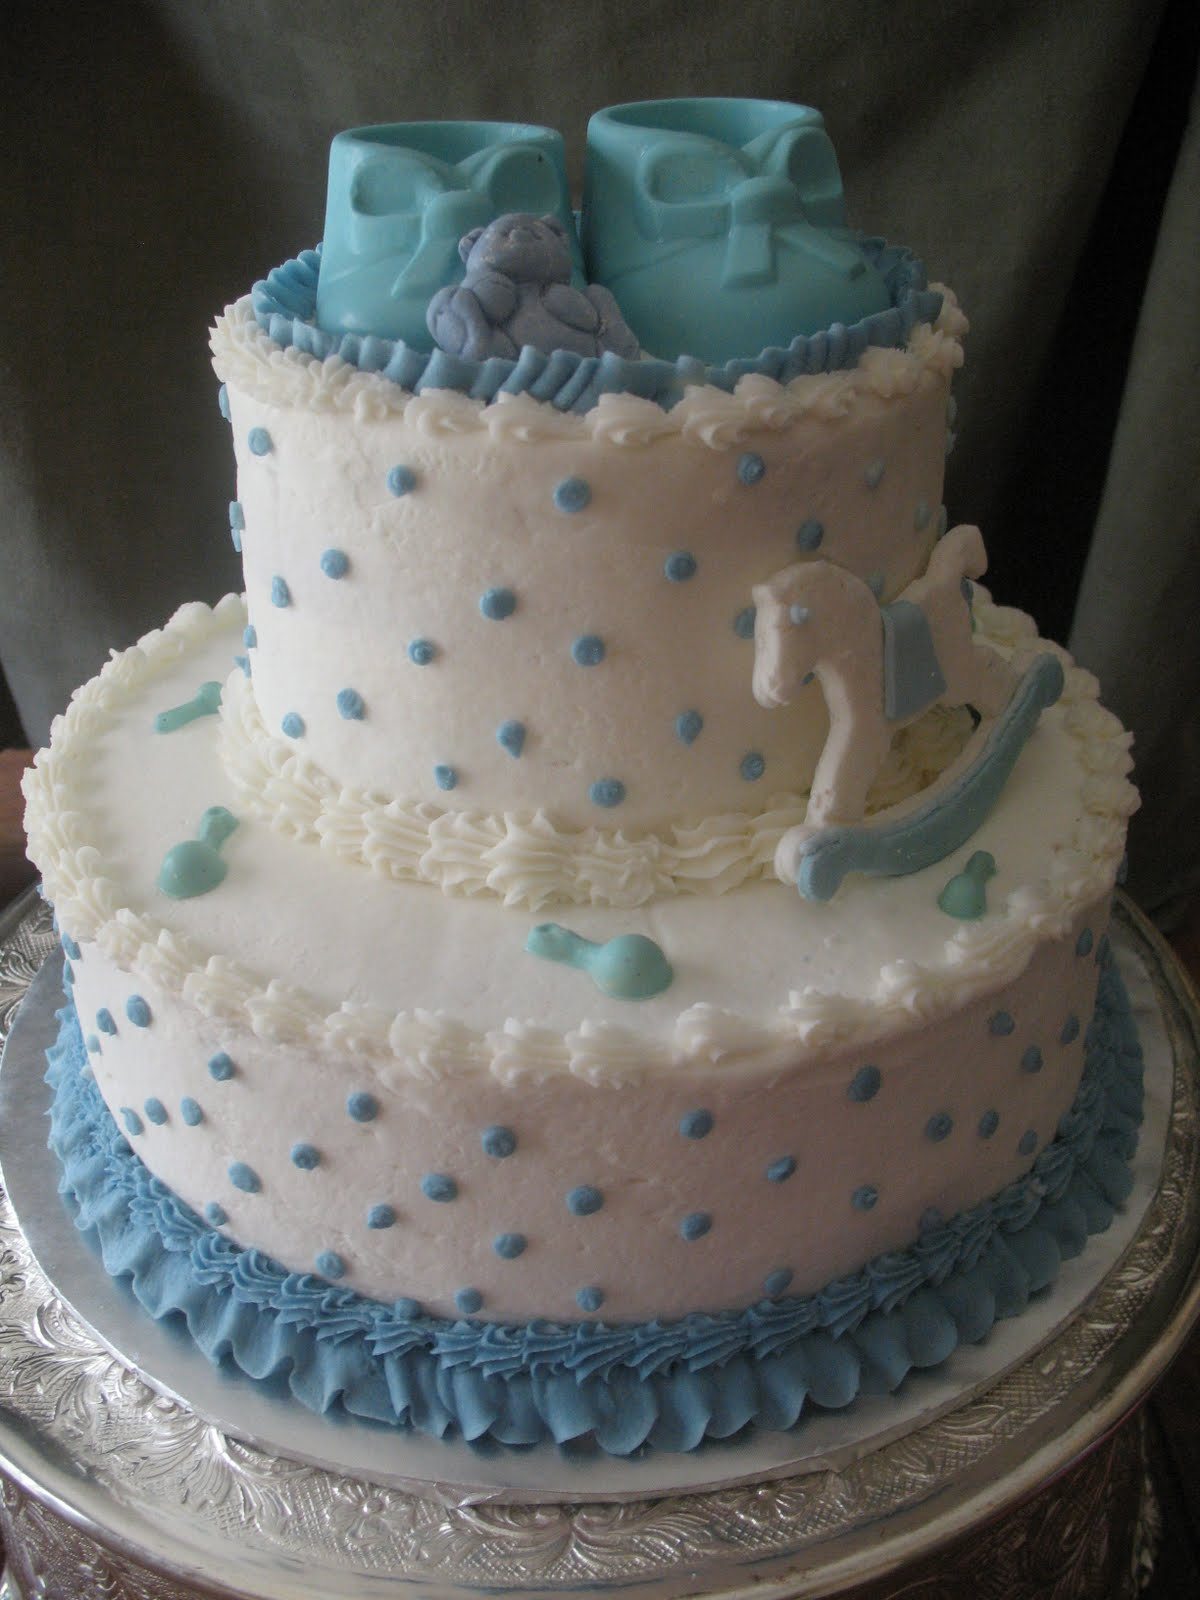 this baby shower cake was an almond butter cake with buttercream icing